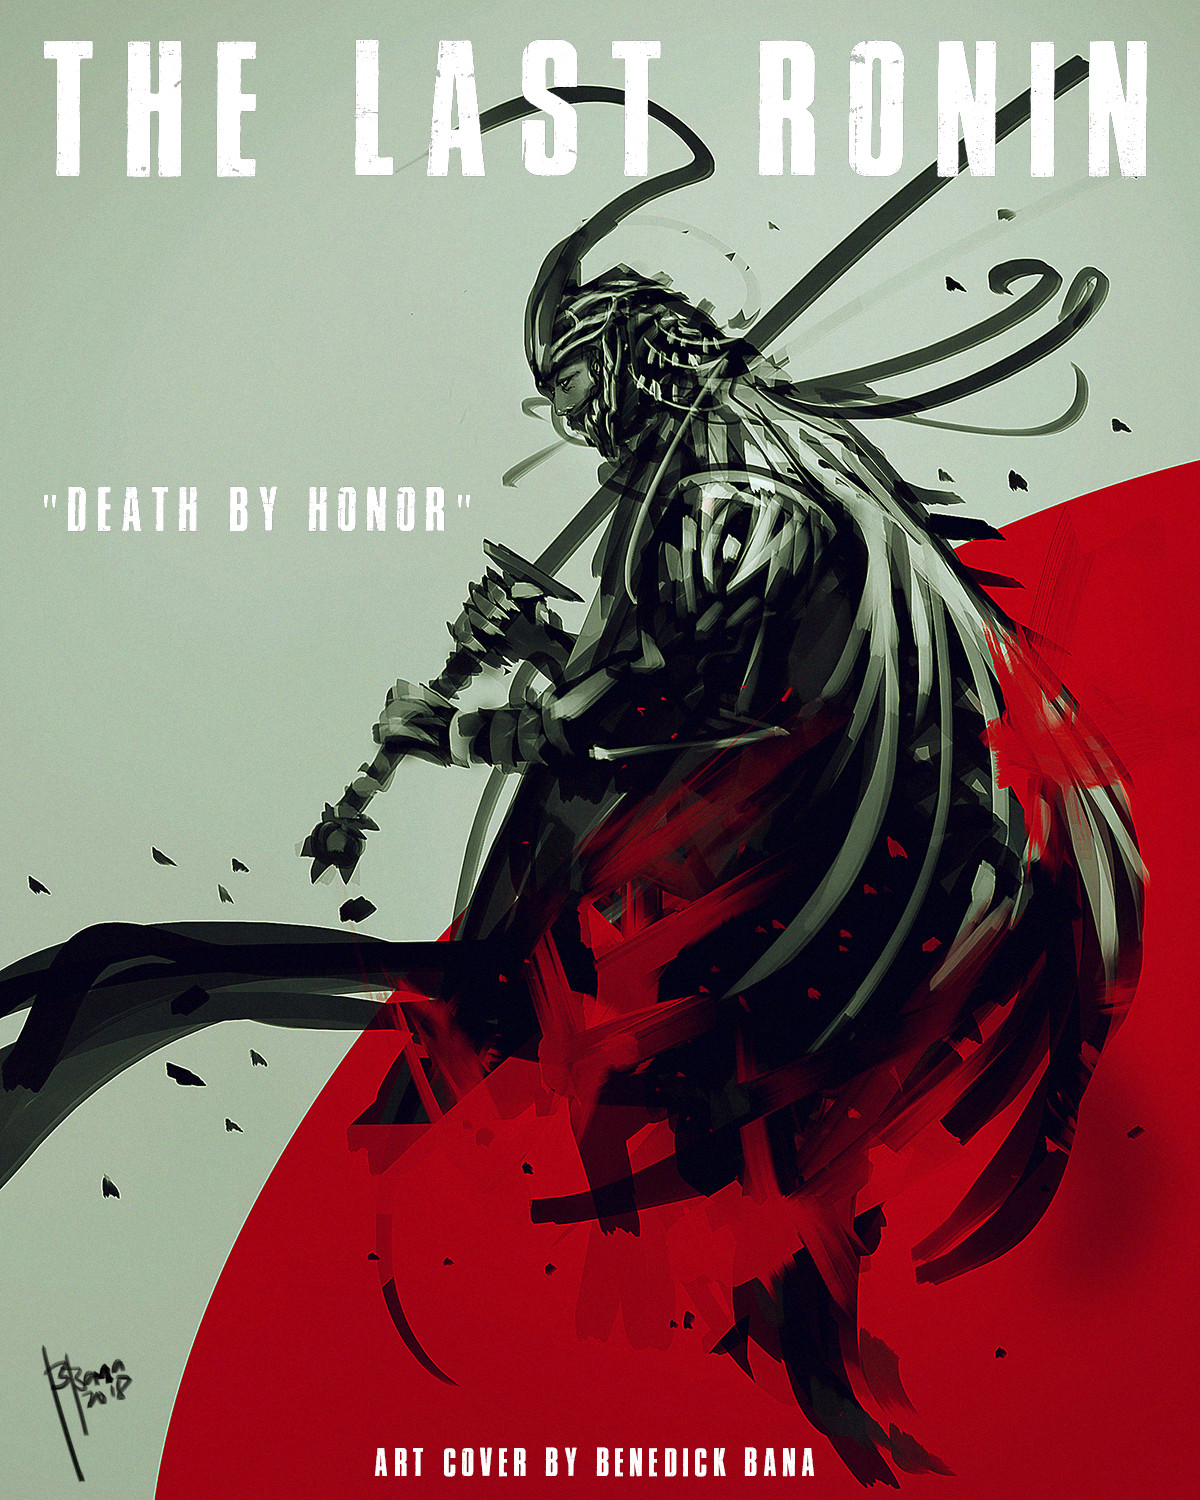 The Last Ronin with title &  text